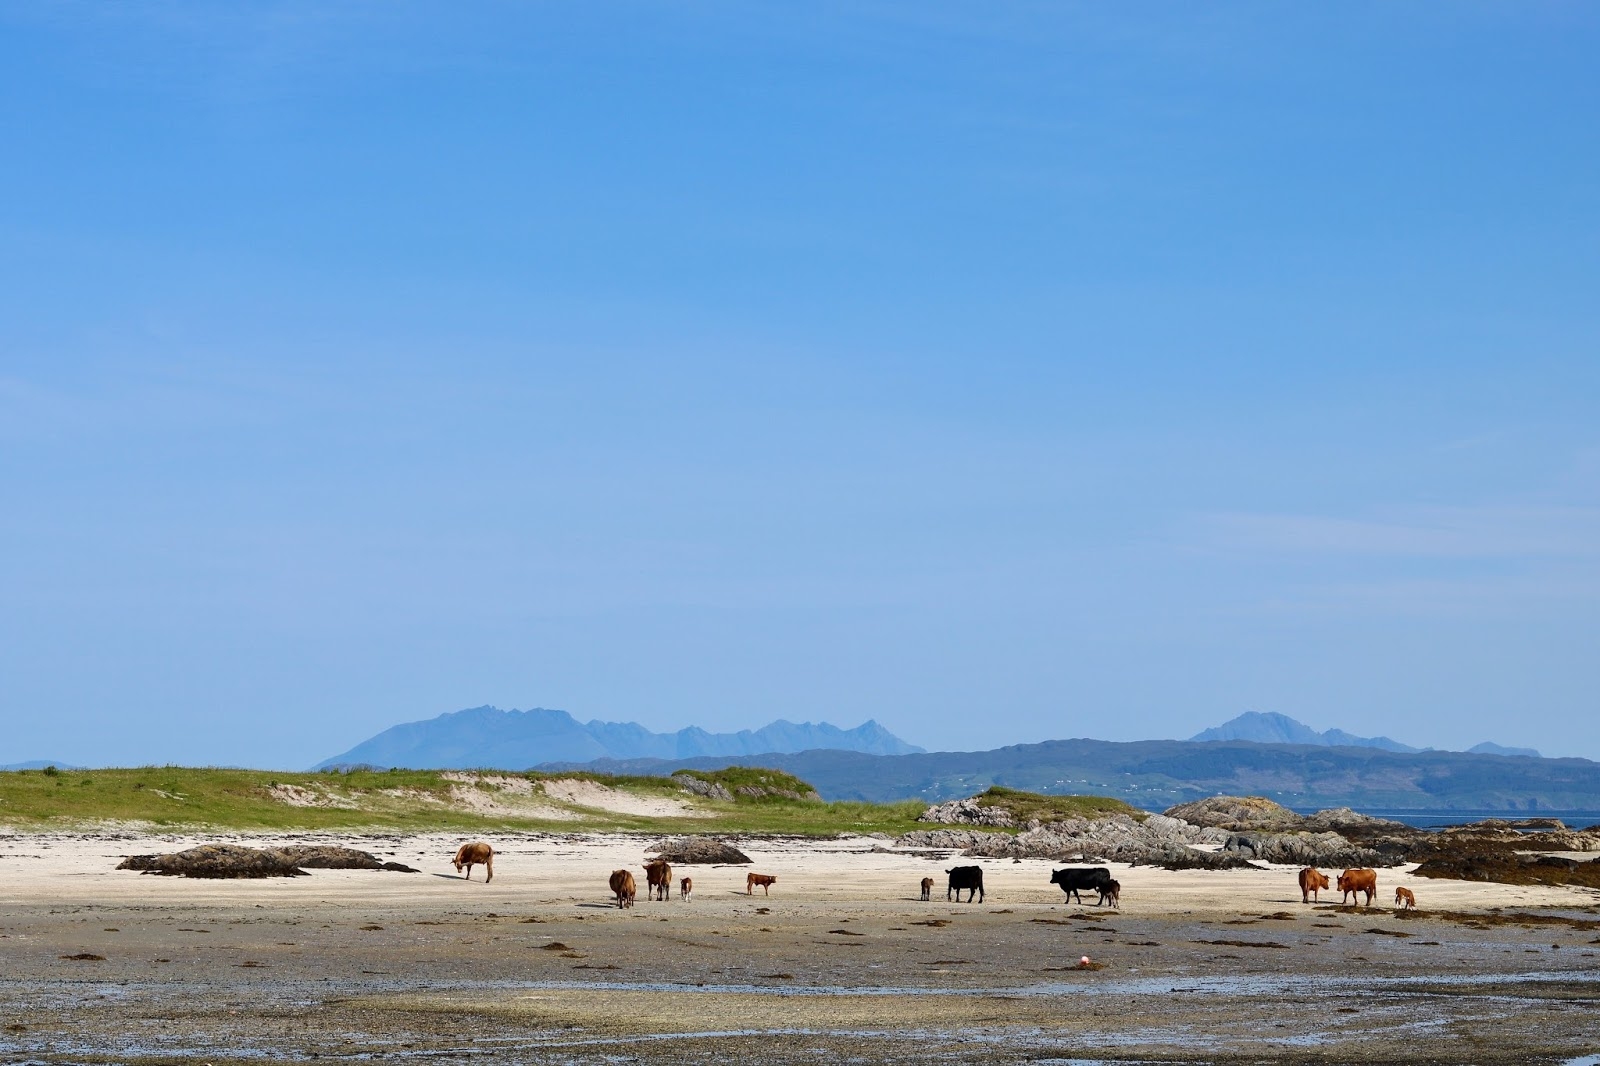 Local white sandy beach in Arisaig where the cows have taken over, www.CalMCTravels.com, The best campsites in Scotland